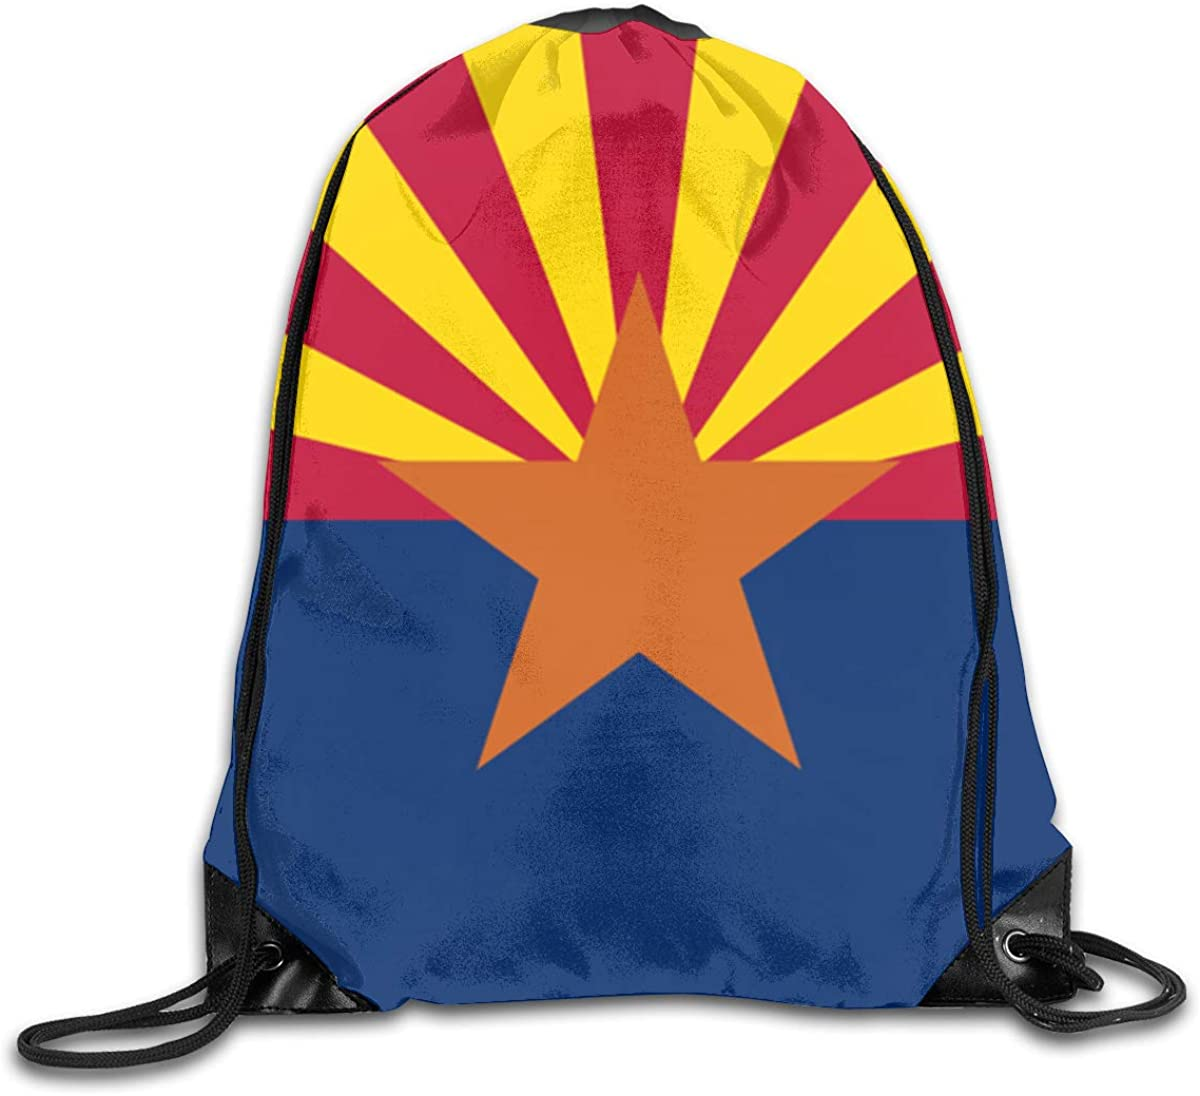 Arizona State Flag Beam Mouth Backpack Pull Rope Shoulder Bag Outdoor Sports Leisure Bag